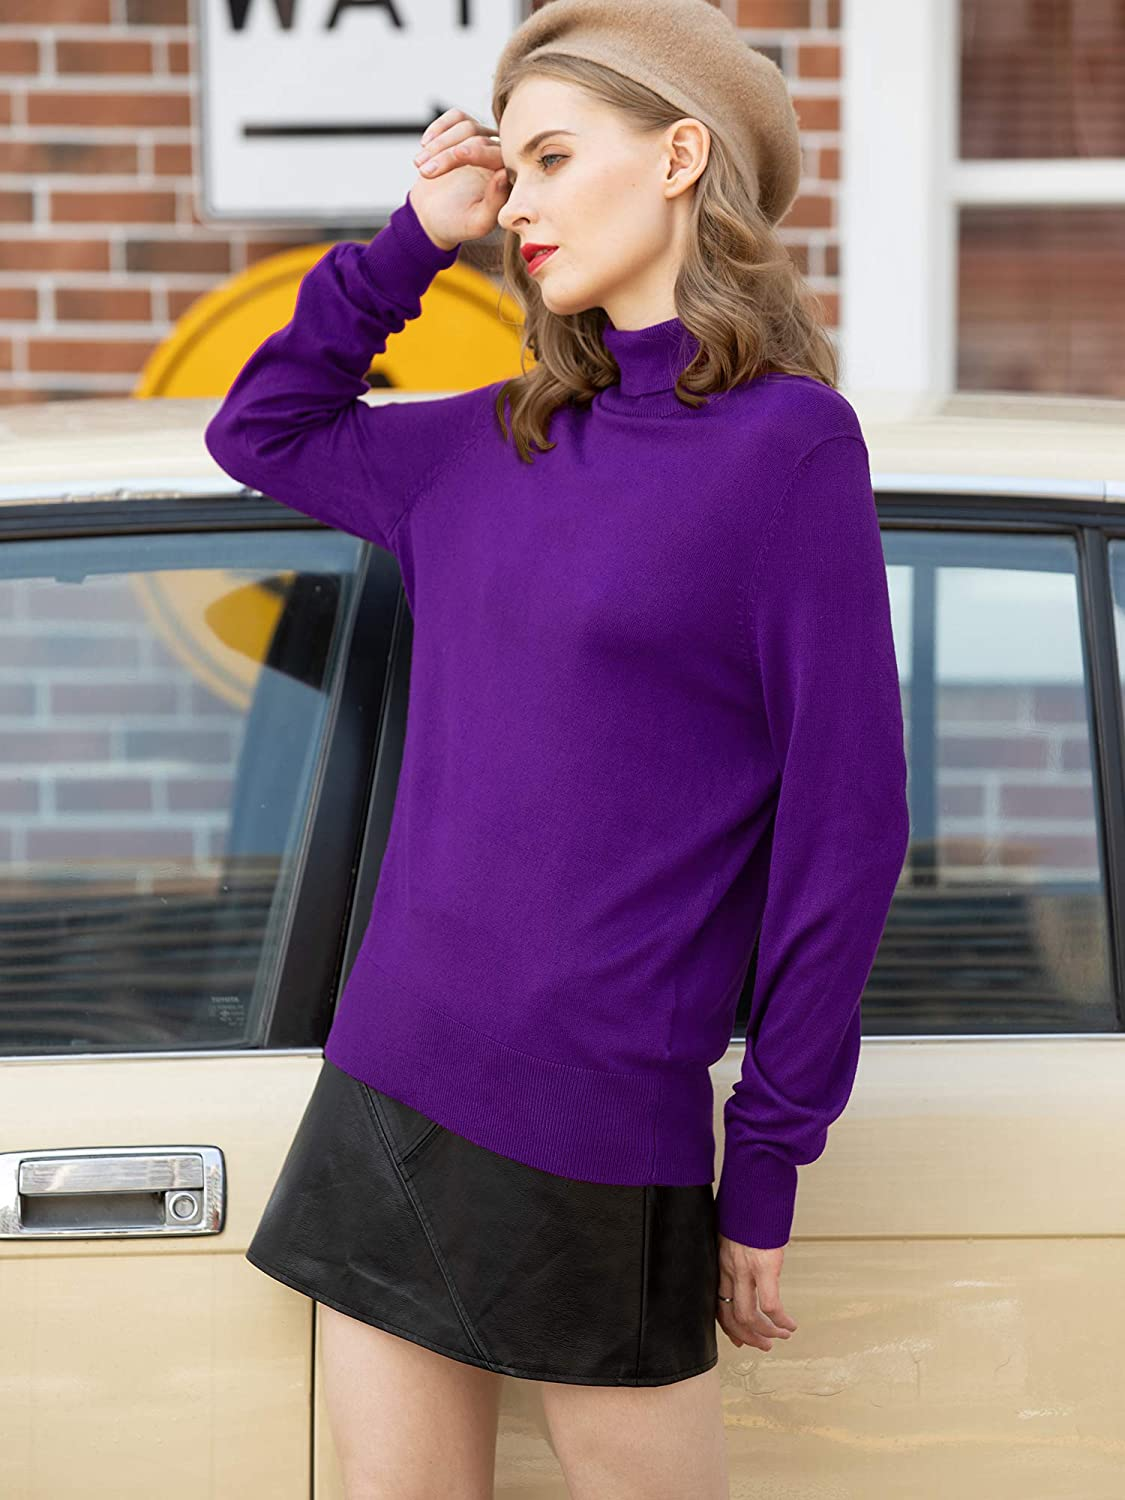 Woolen Bloom Womens Turtleneck Sweater Pullover Lightweight Long Sleeve Sweaters Tops for Women Fall Solid Casual